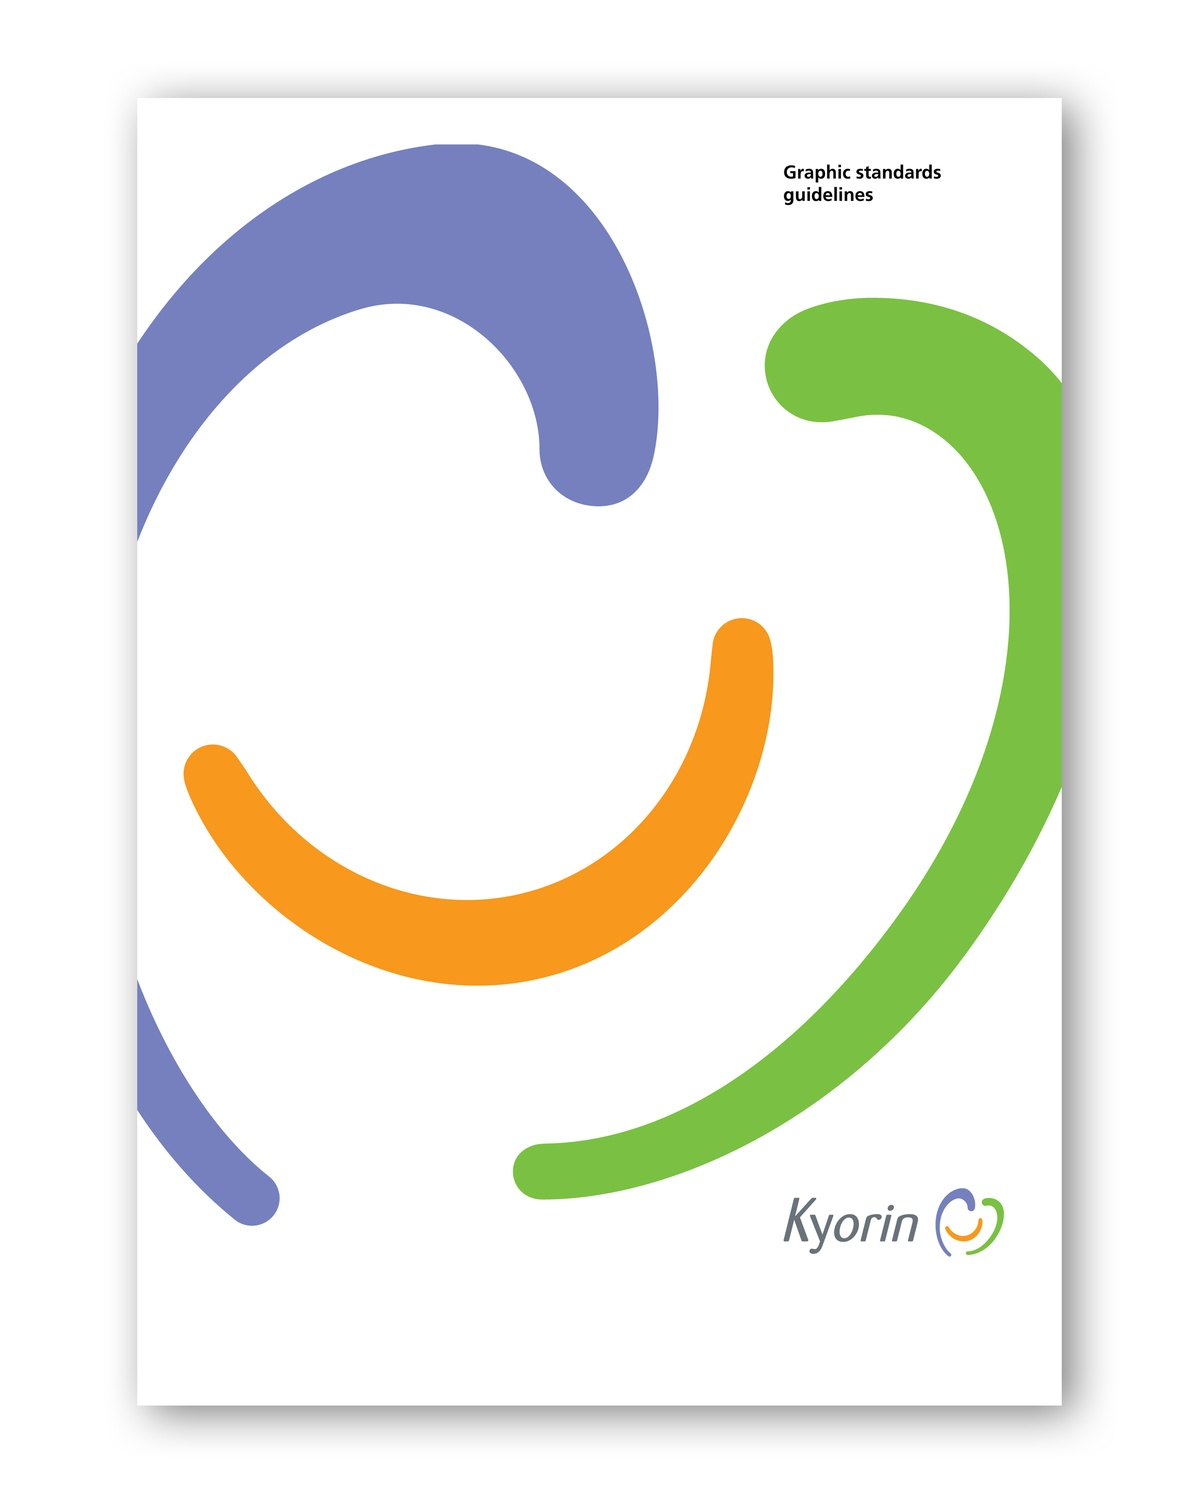 Project image 2 for Identity, Kyorin Pharmaceutical Co.